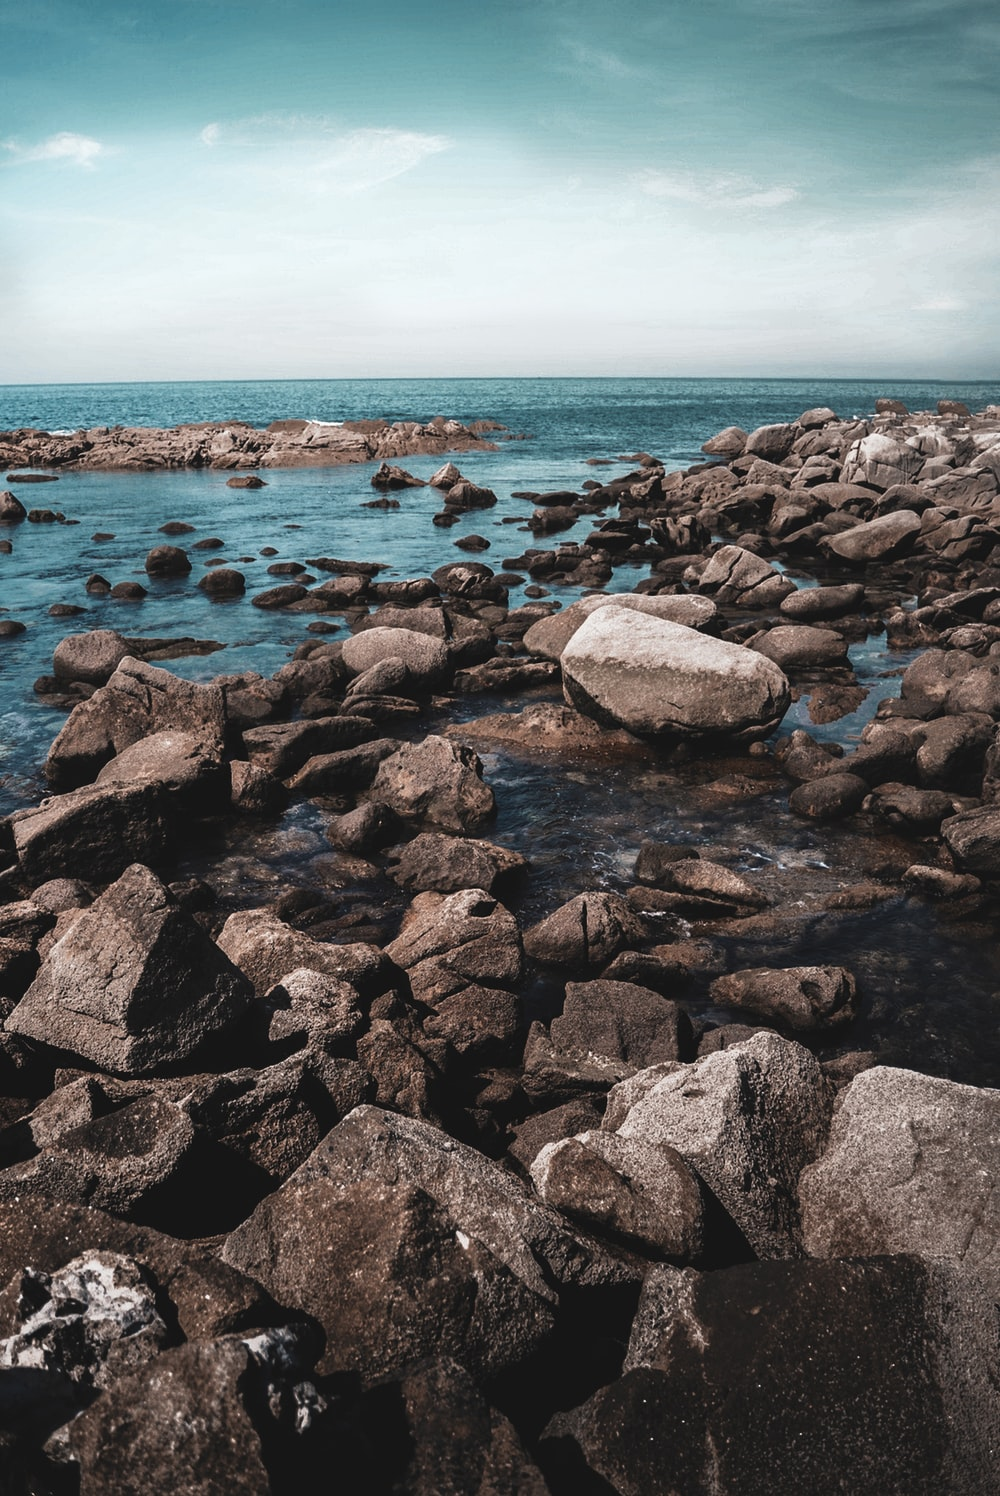 gray and black rocks on sea shore during daytime